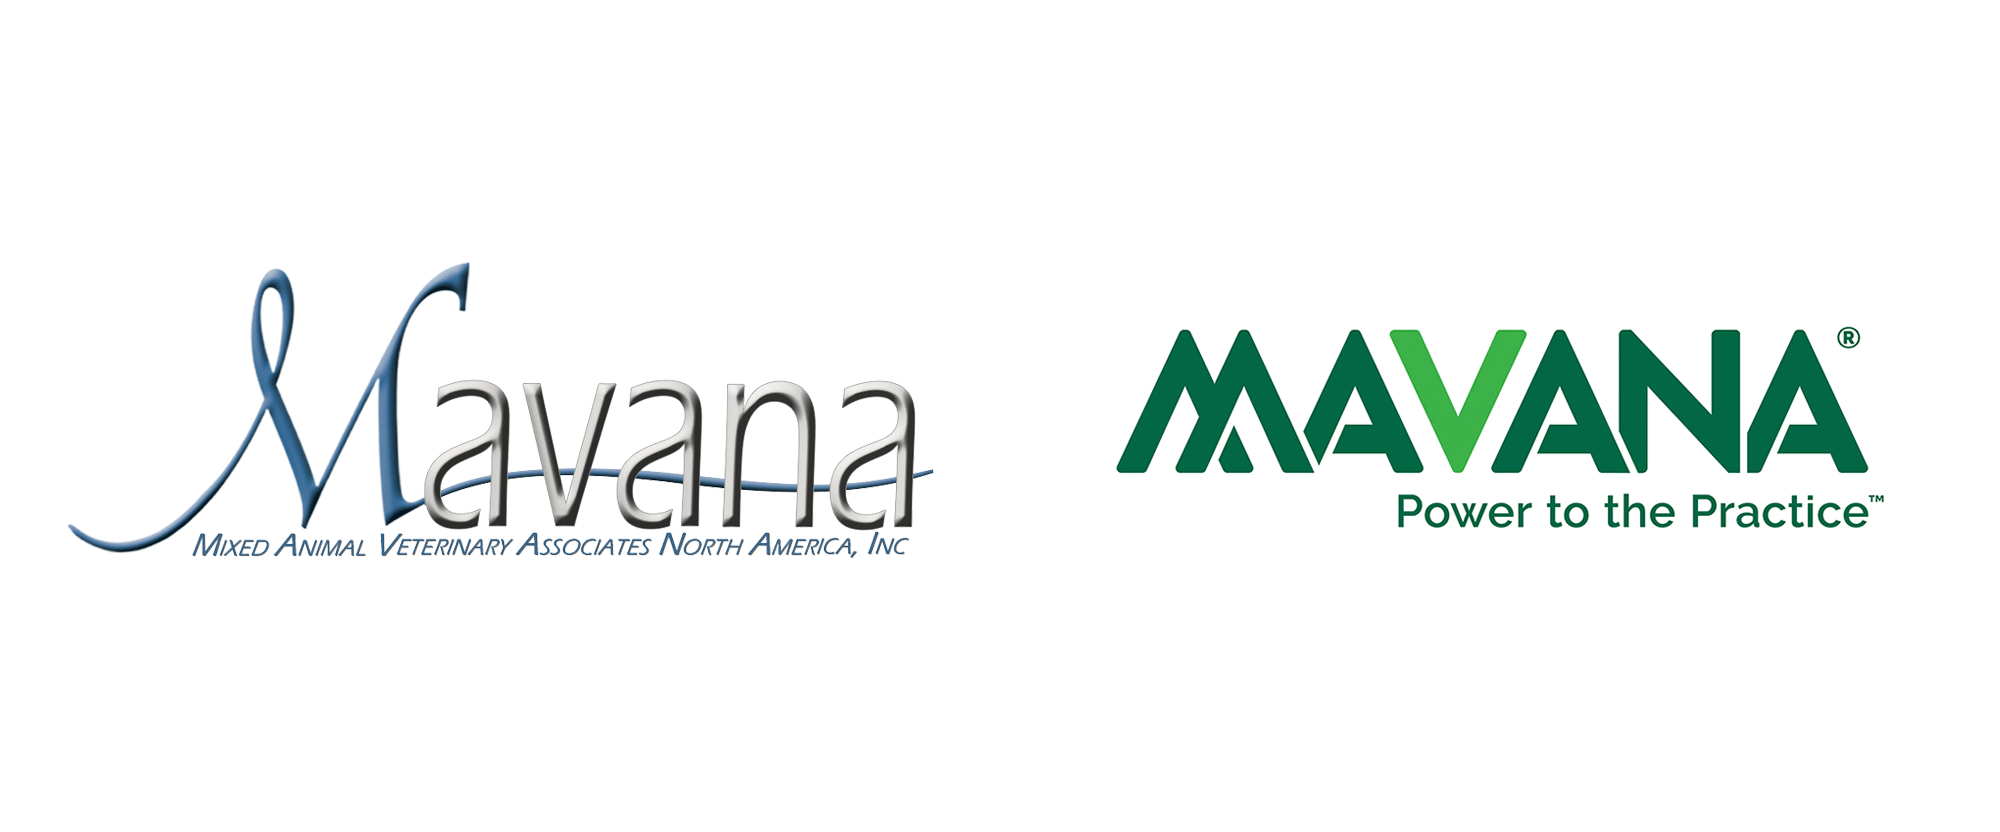 New Logo and Identity for Mavana by Stewart and Associates